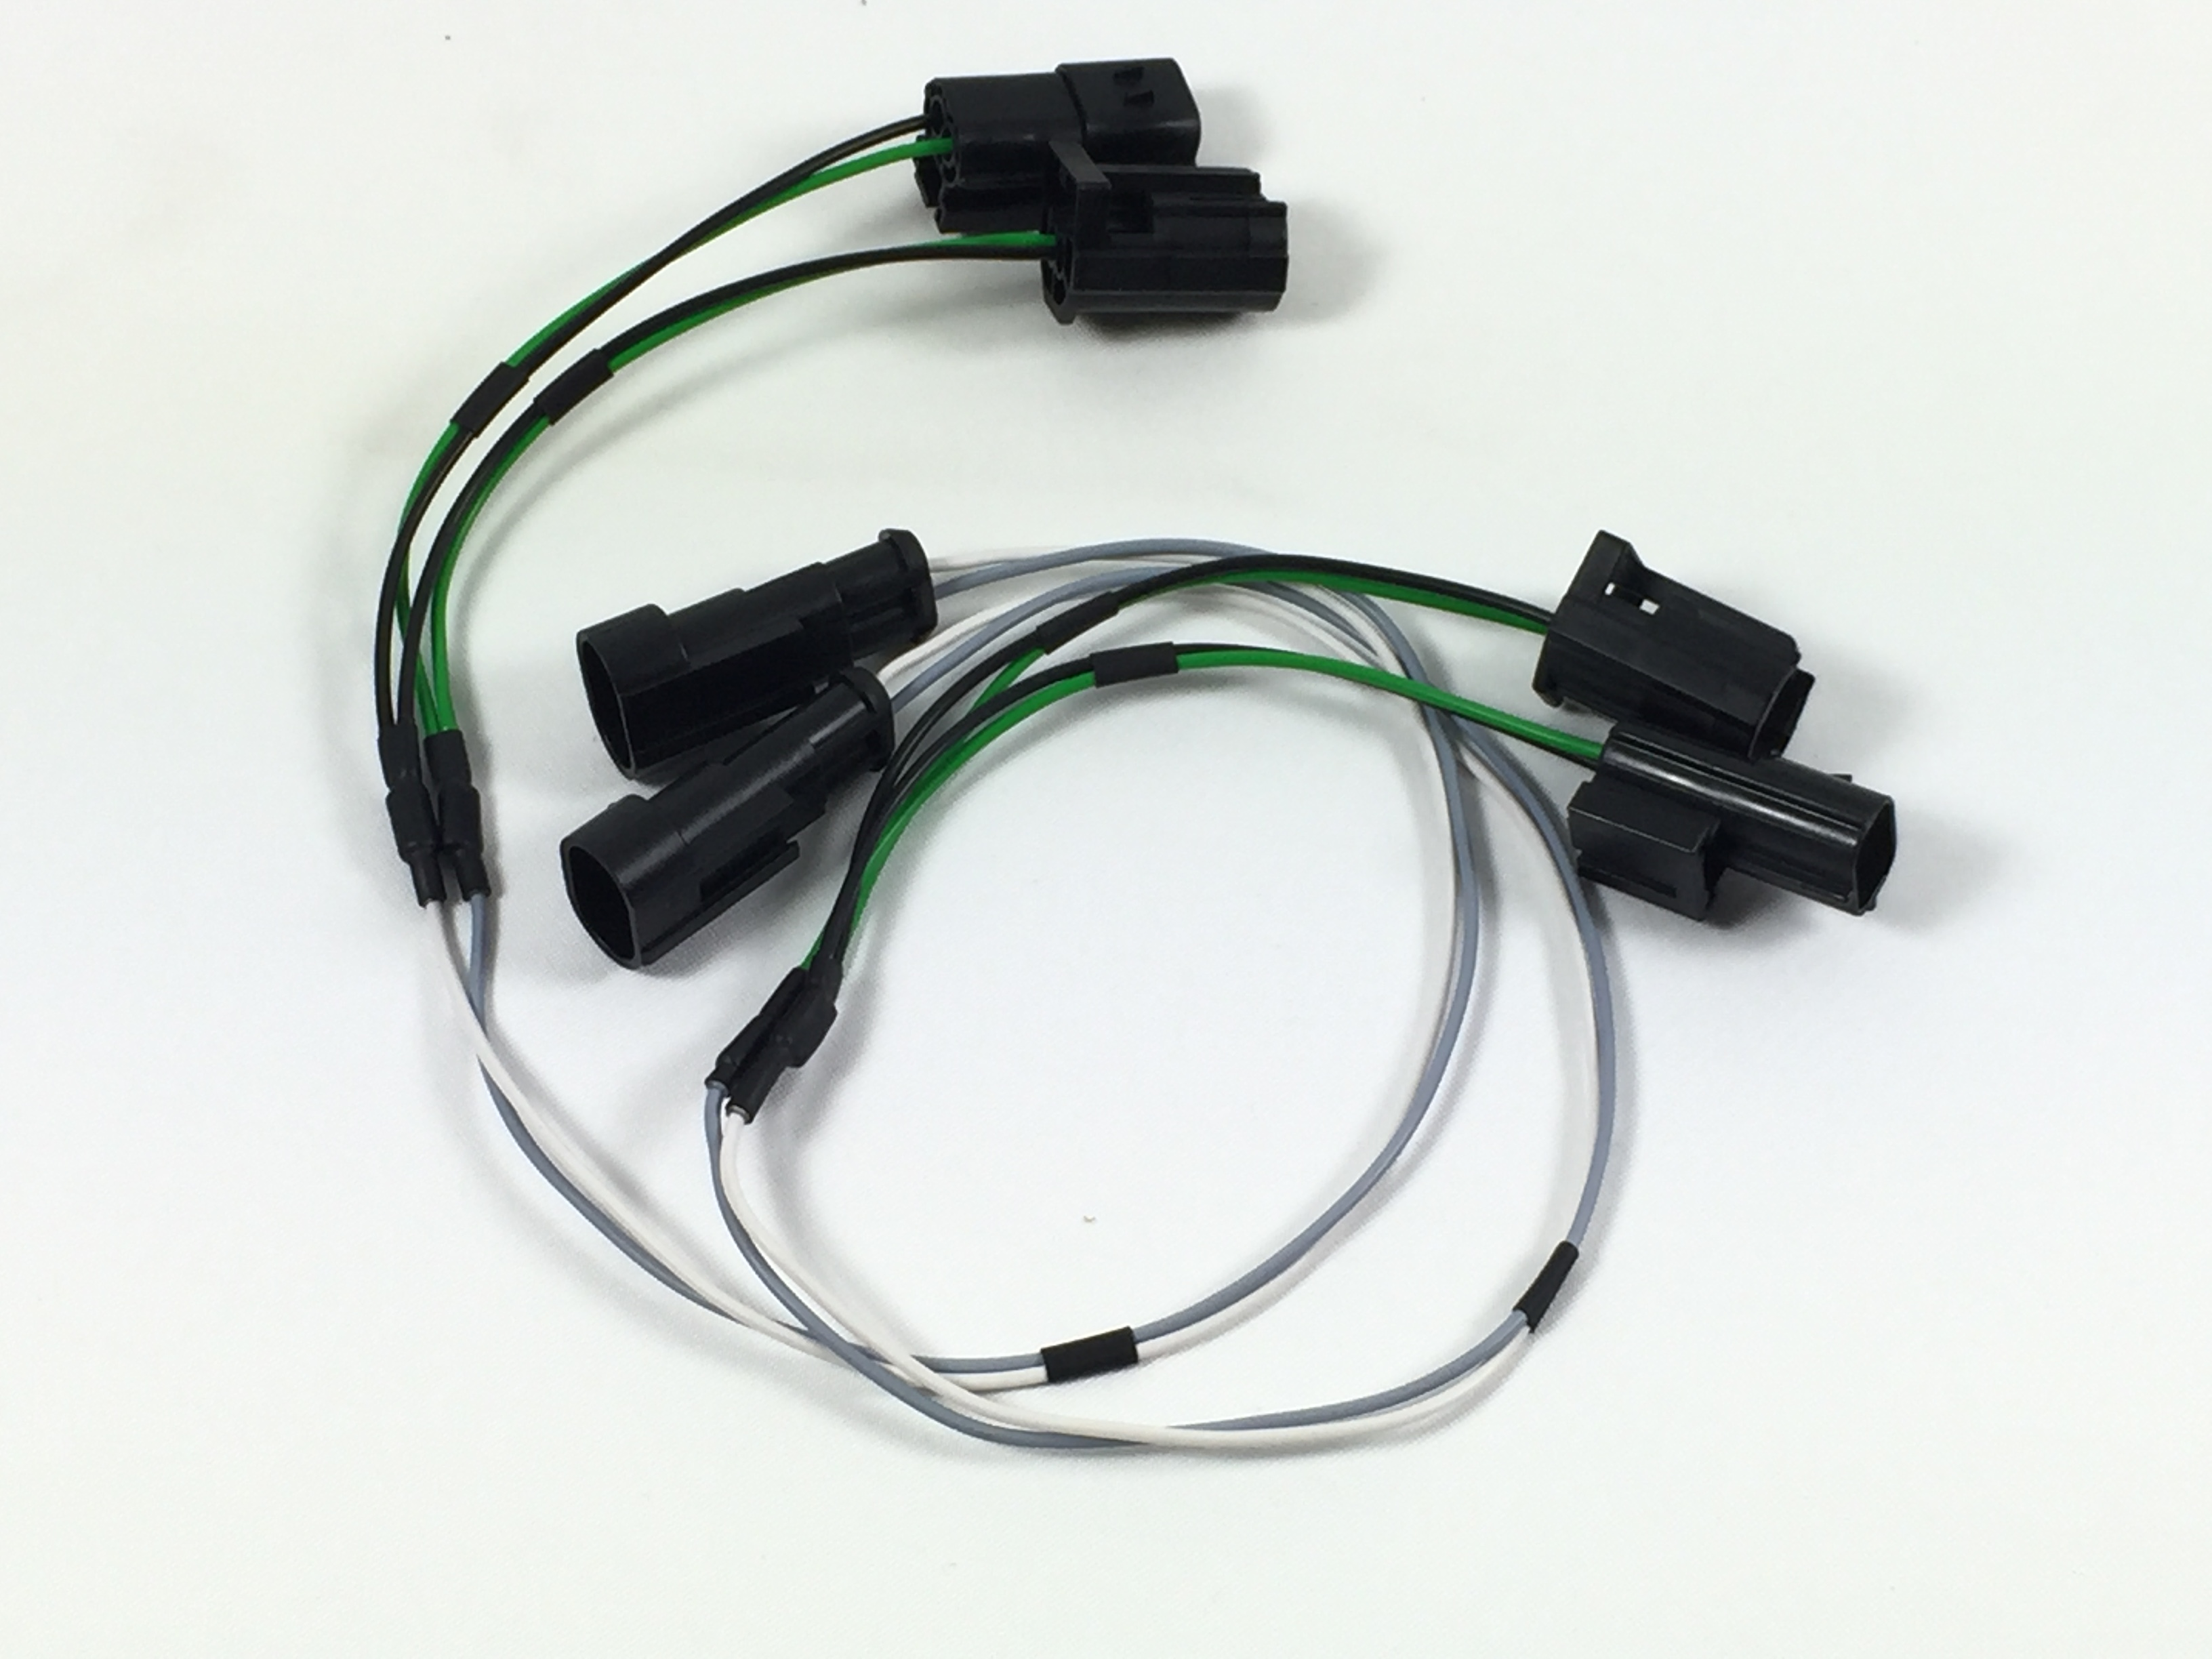 Nolden Wiring Harness